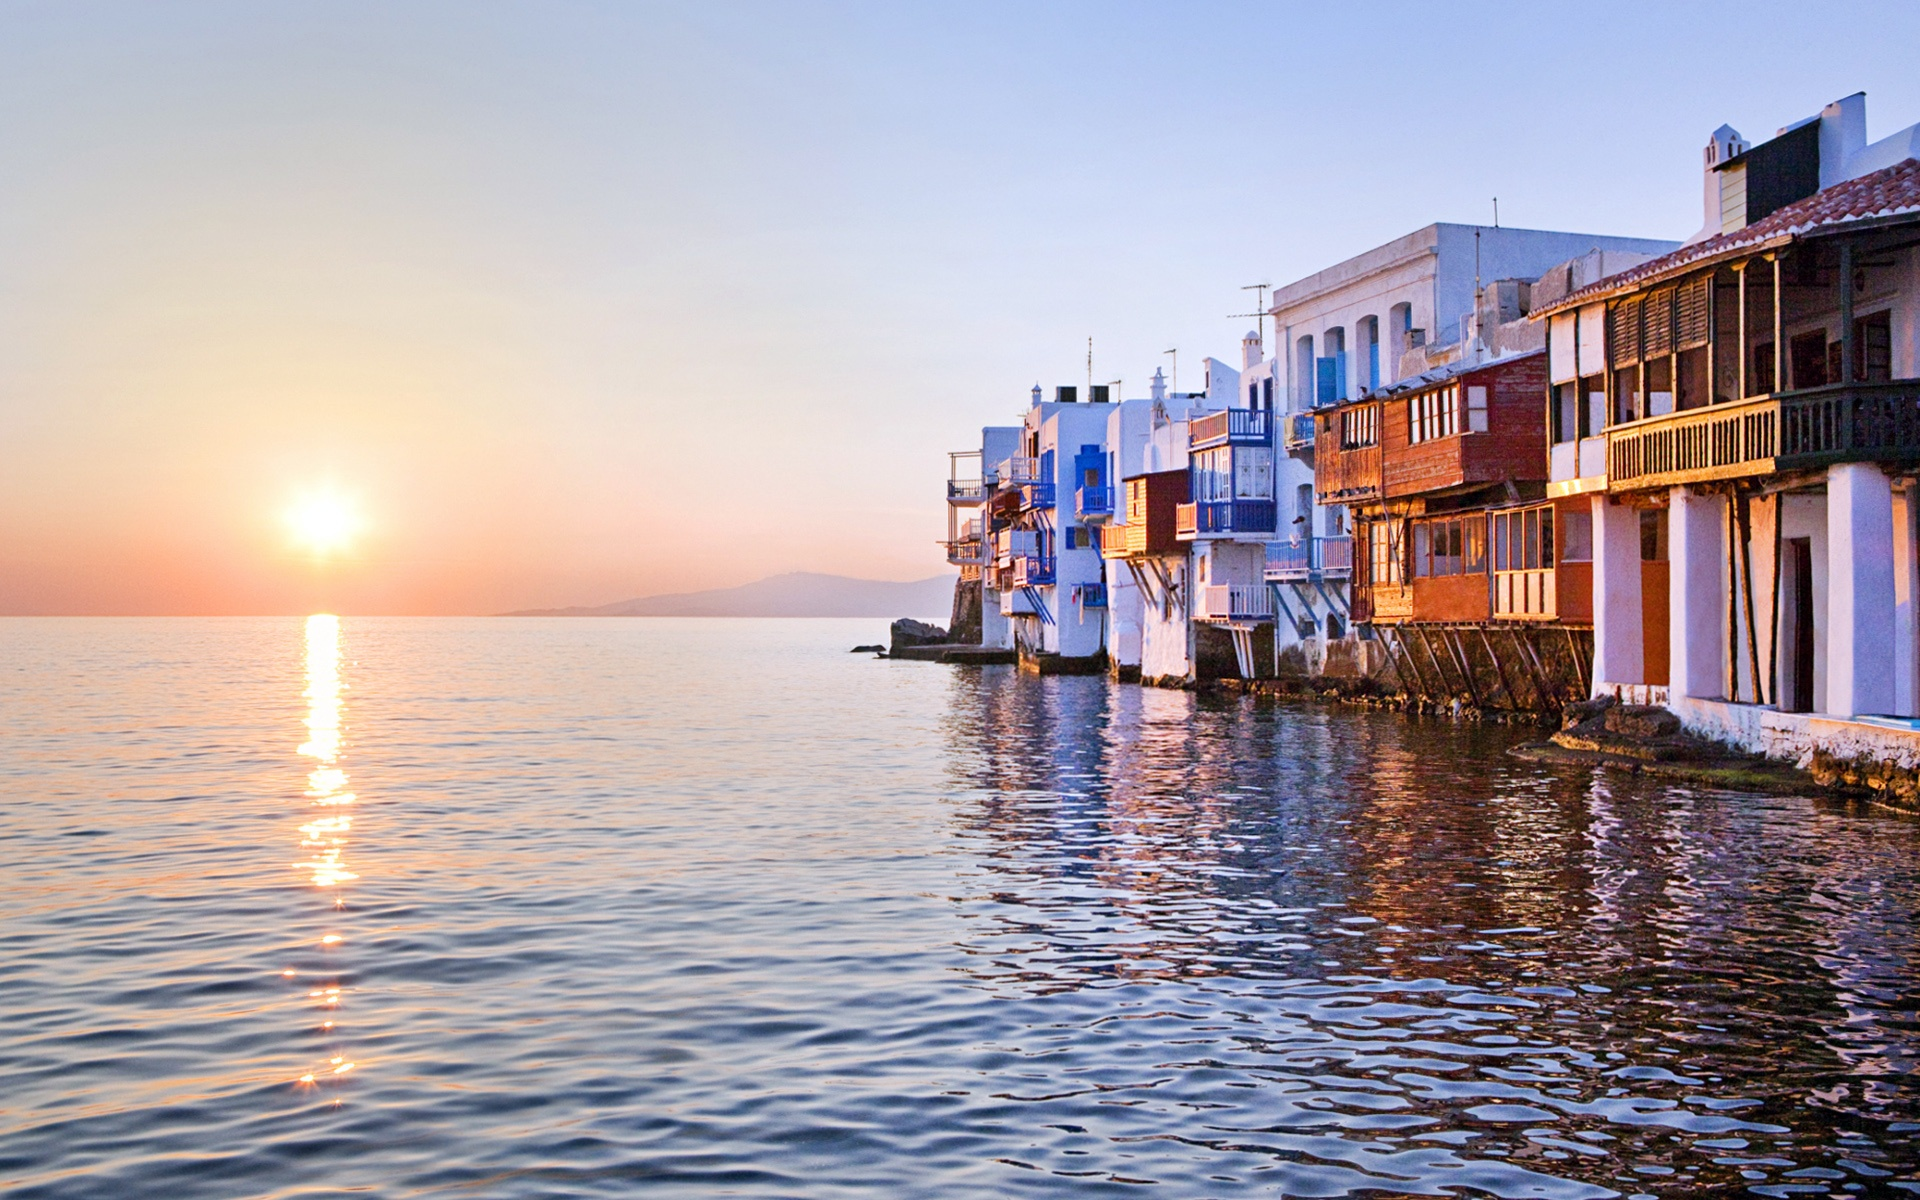 Little Venice, Mykonos, Greece, Sunset